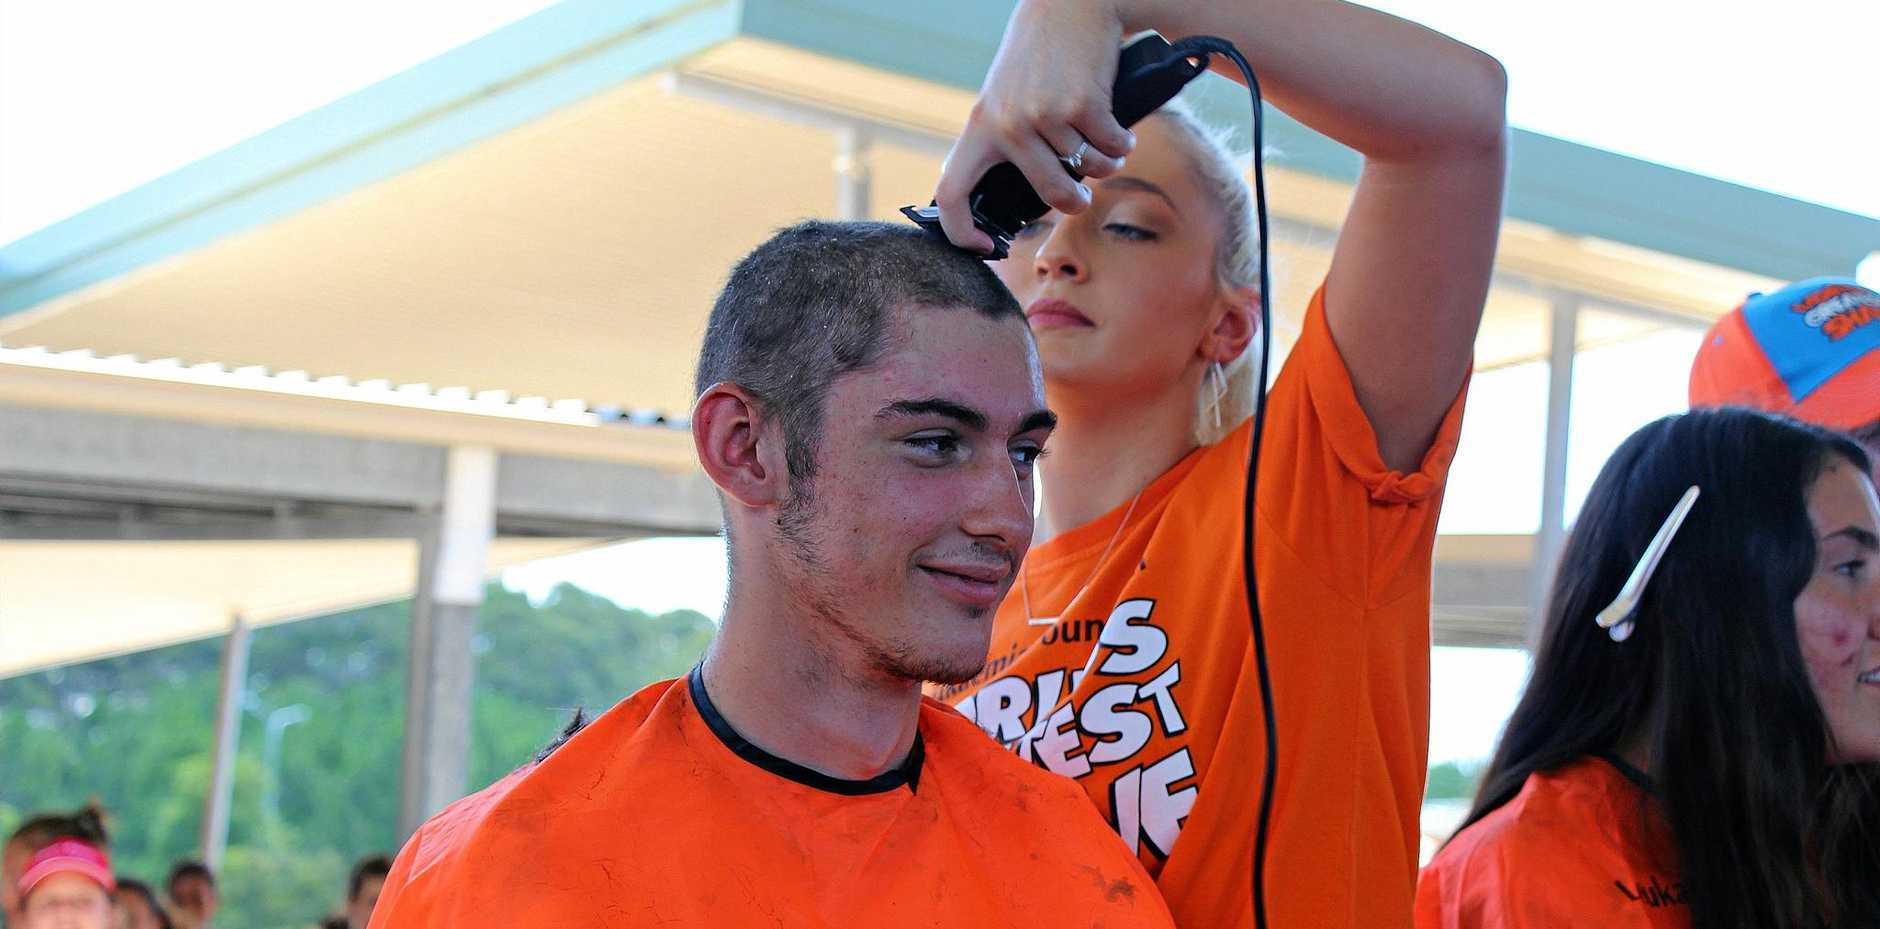 SHAVE FOR SOLIDARITY: 17-year-old Jayden Holmes is shaving in support of his best friend.